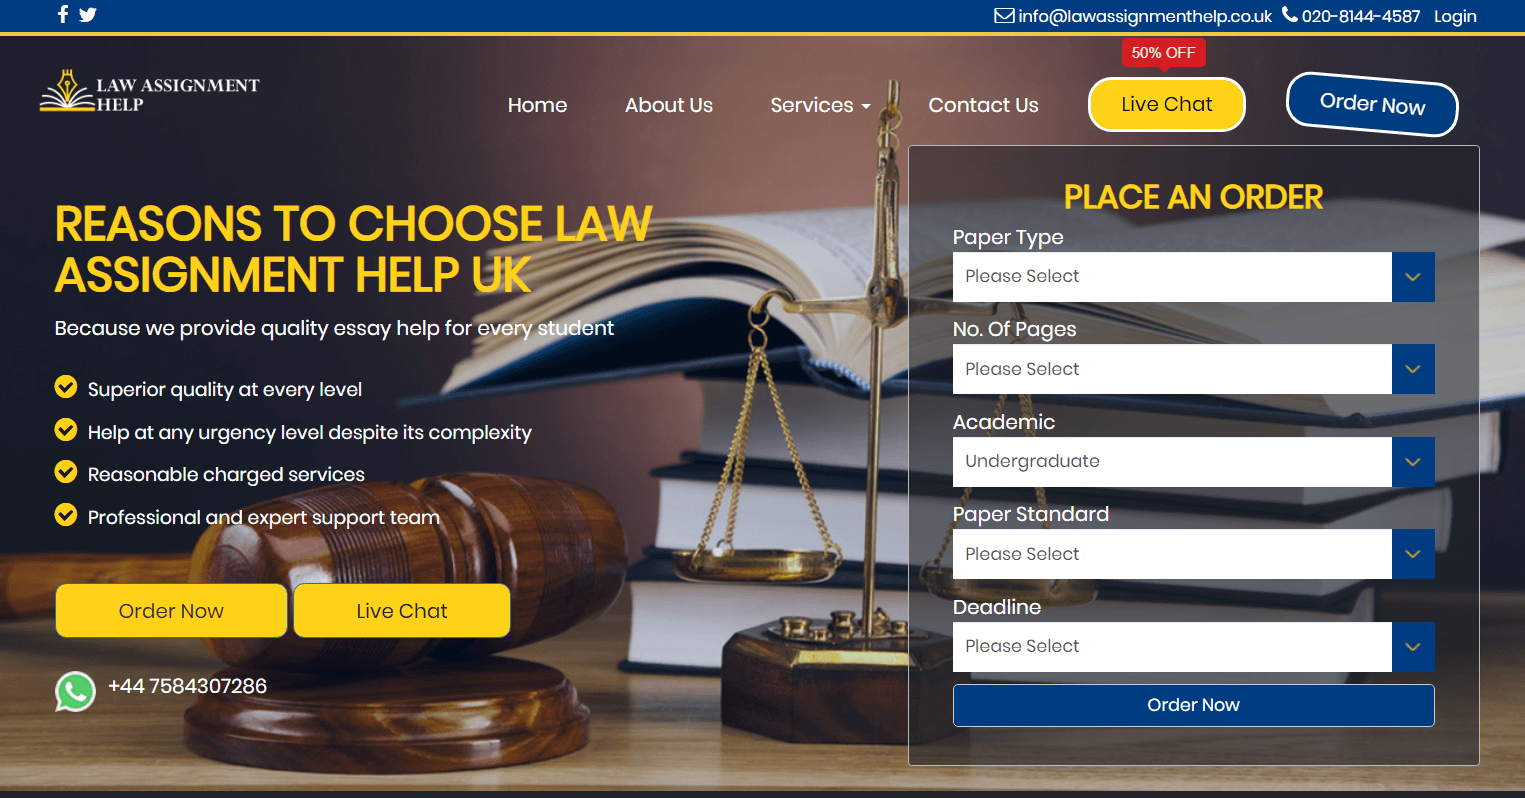 lawassignmenthelp.co.uk